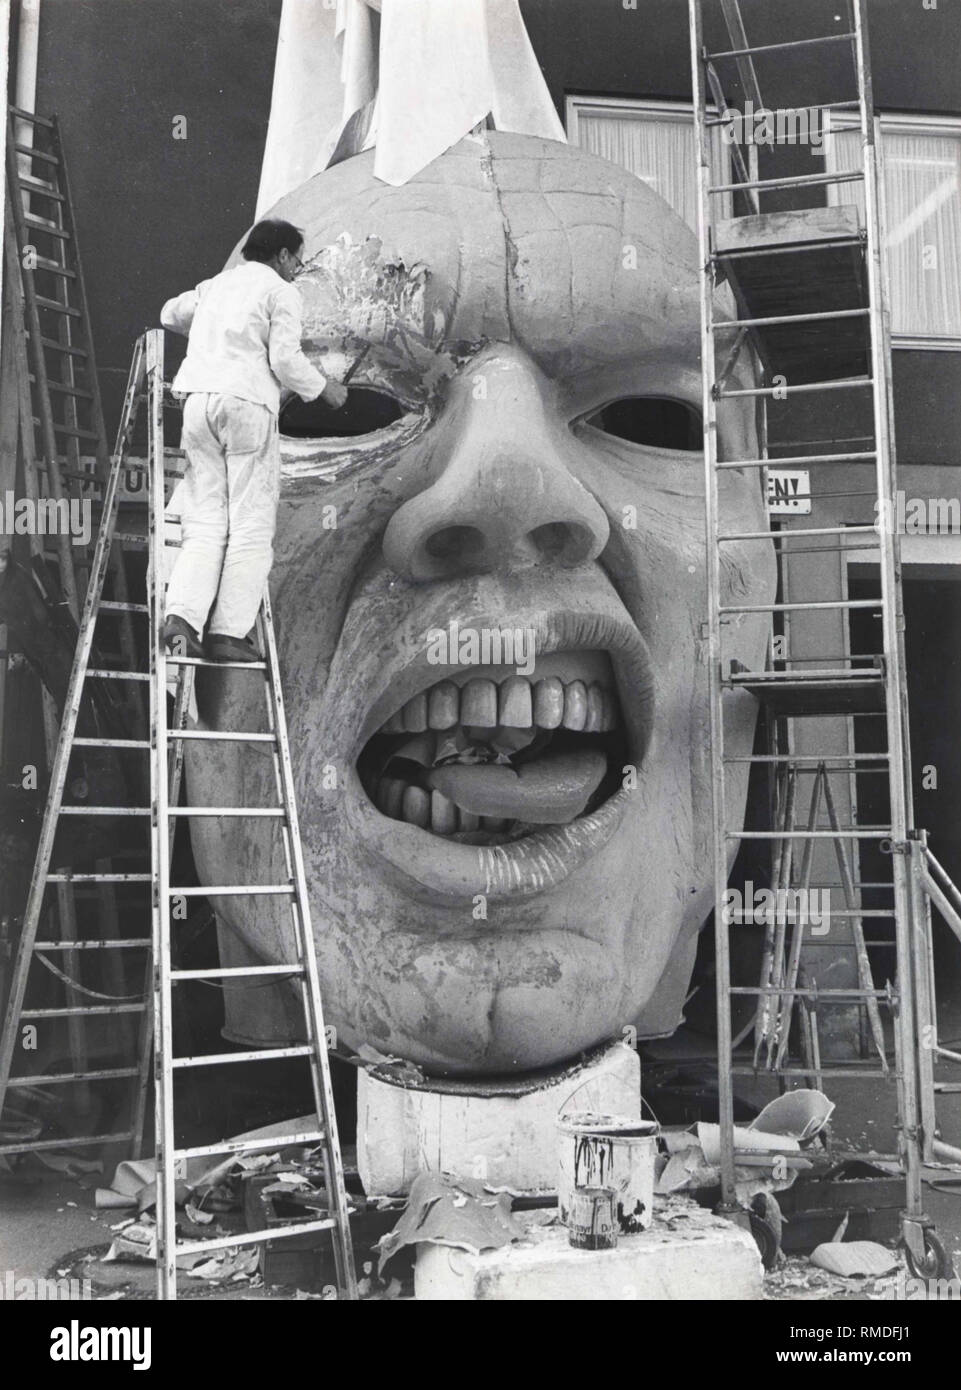 A papier mache head with a movable tongue is assembled in the depot of the Kammerspiele Munich. Jürgen Rose designed the earth ghost for Dieter Dorn's production of Goethe's 'Faust' in 1987. - Stock Image